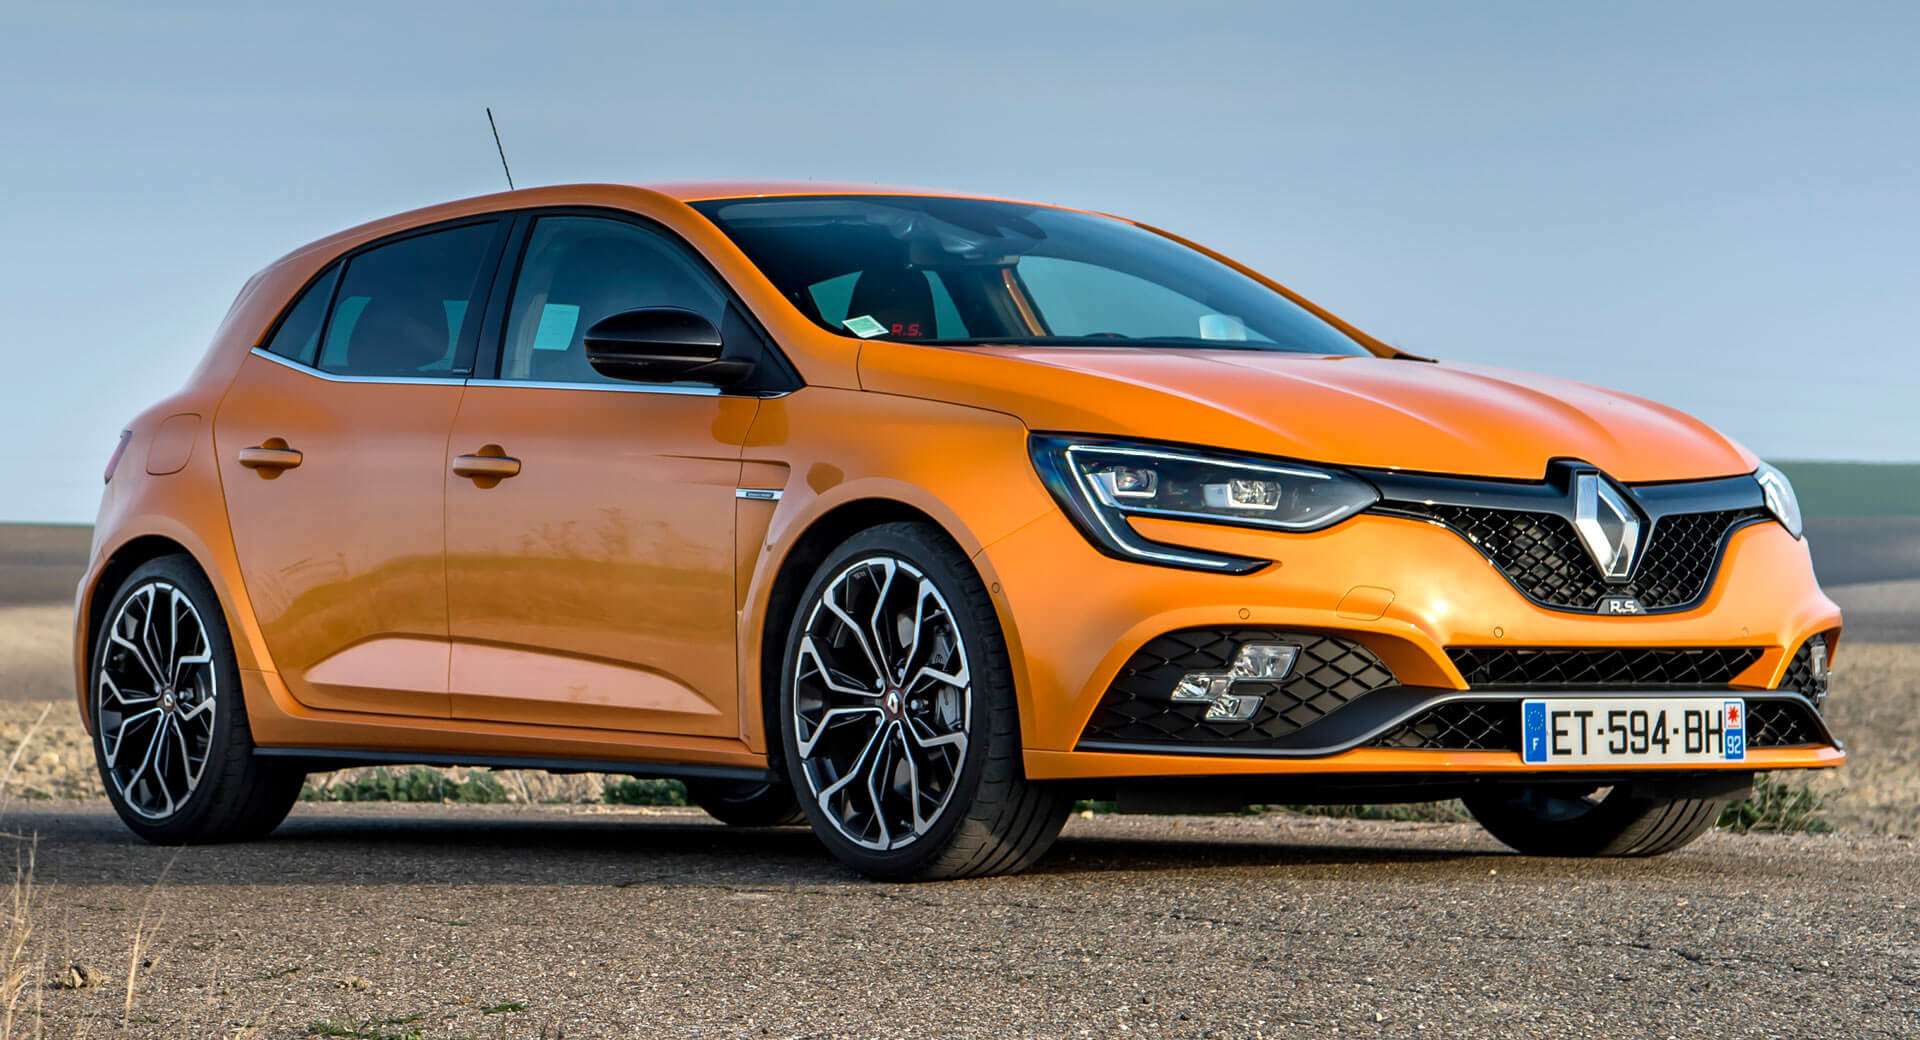 2019 Renault Megane Rs Is Already Available On The 'used